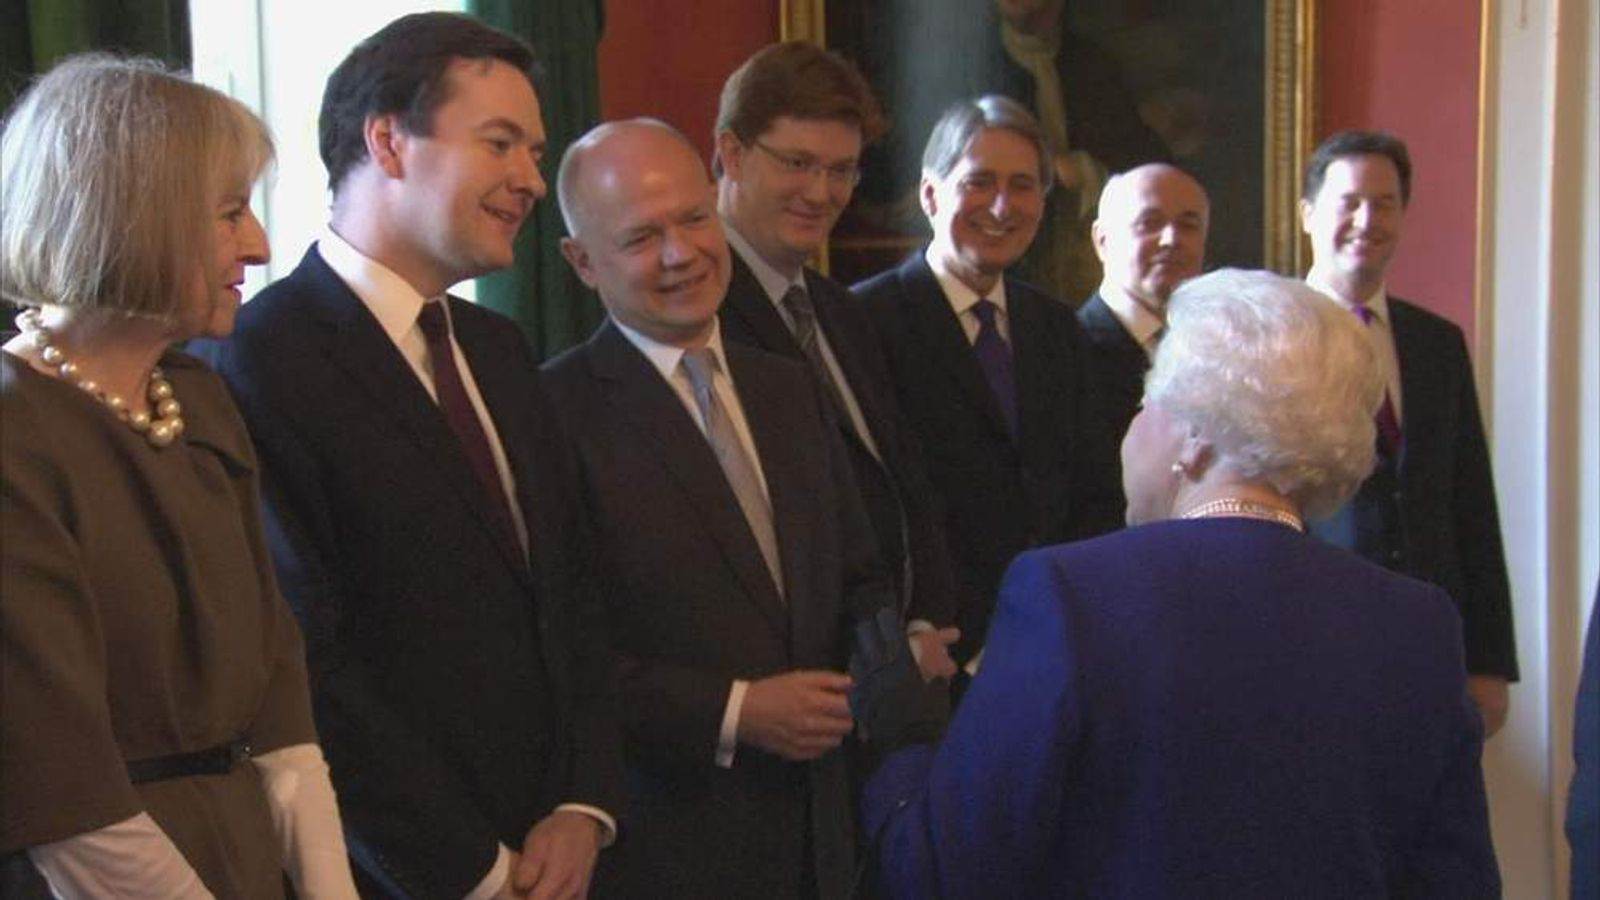 Queen chatting to George Osborne